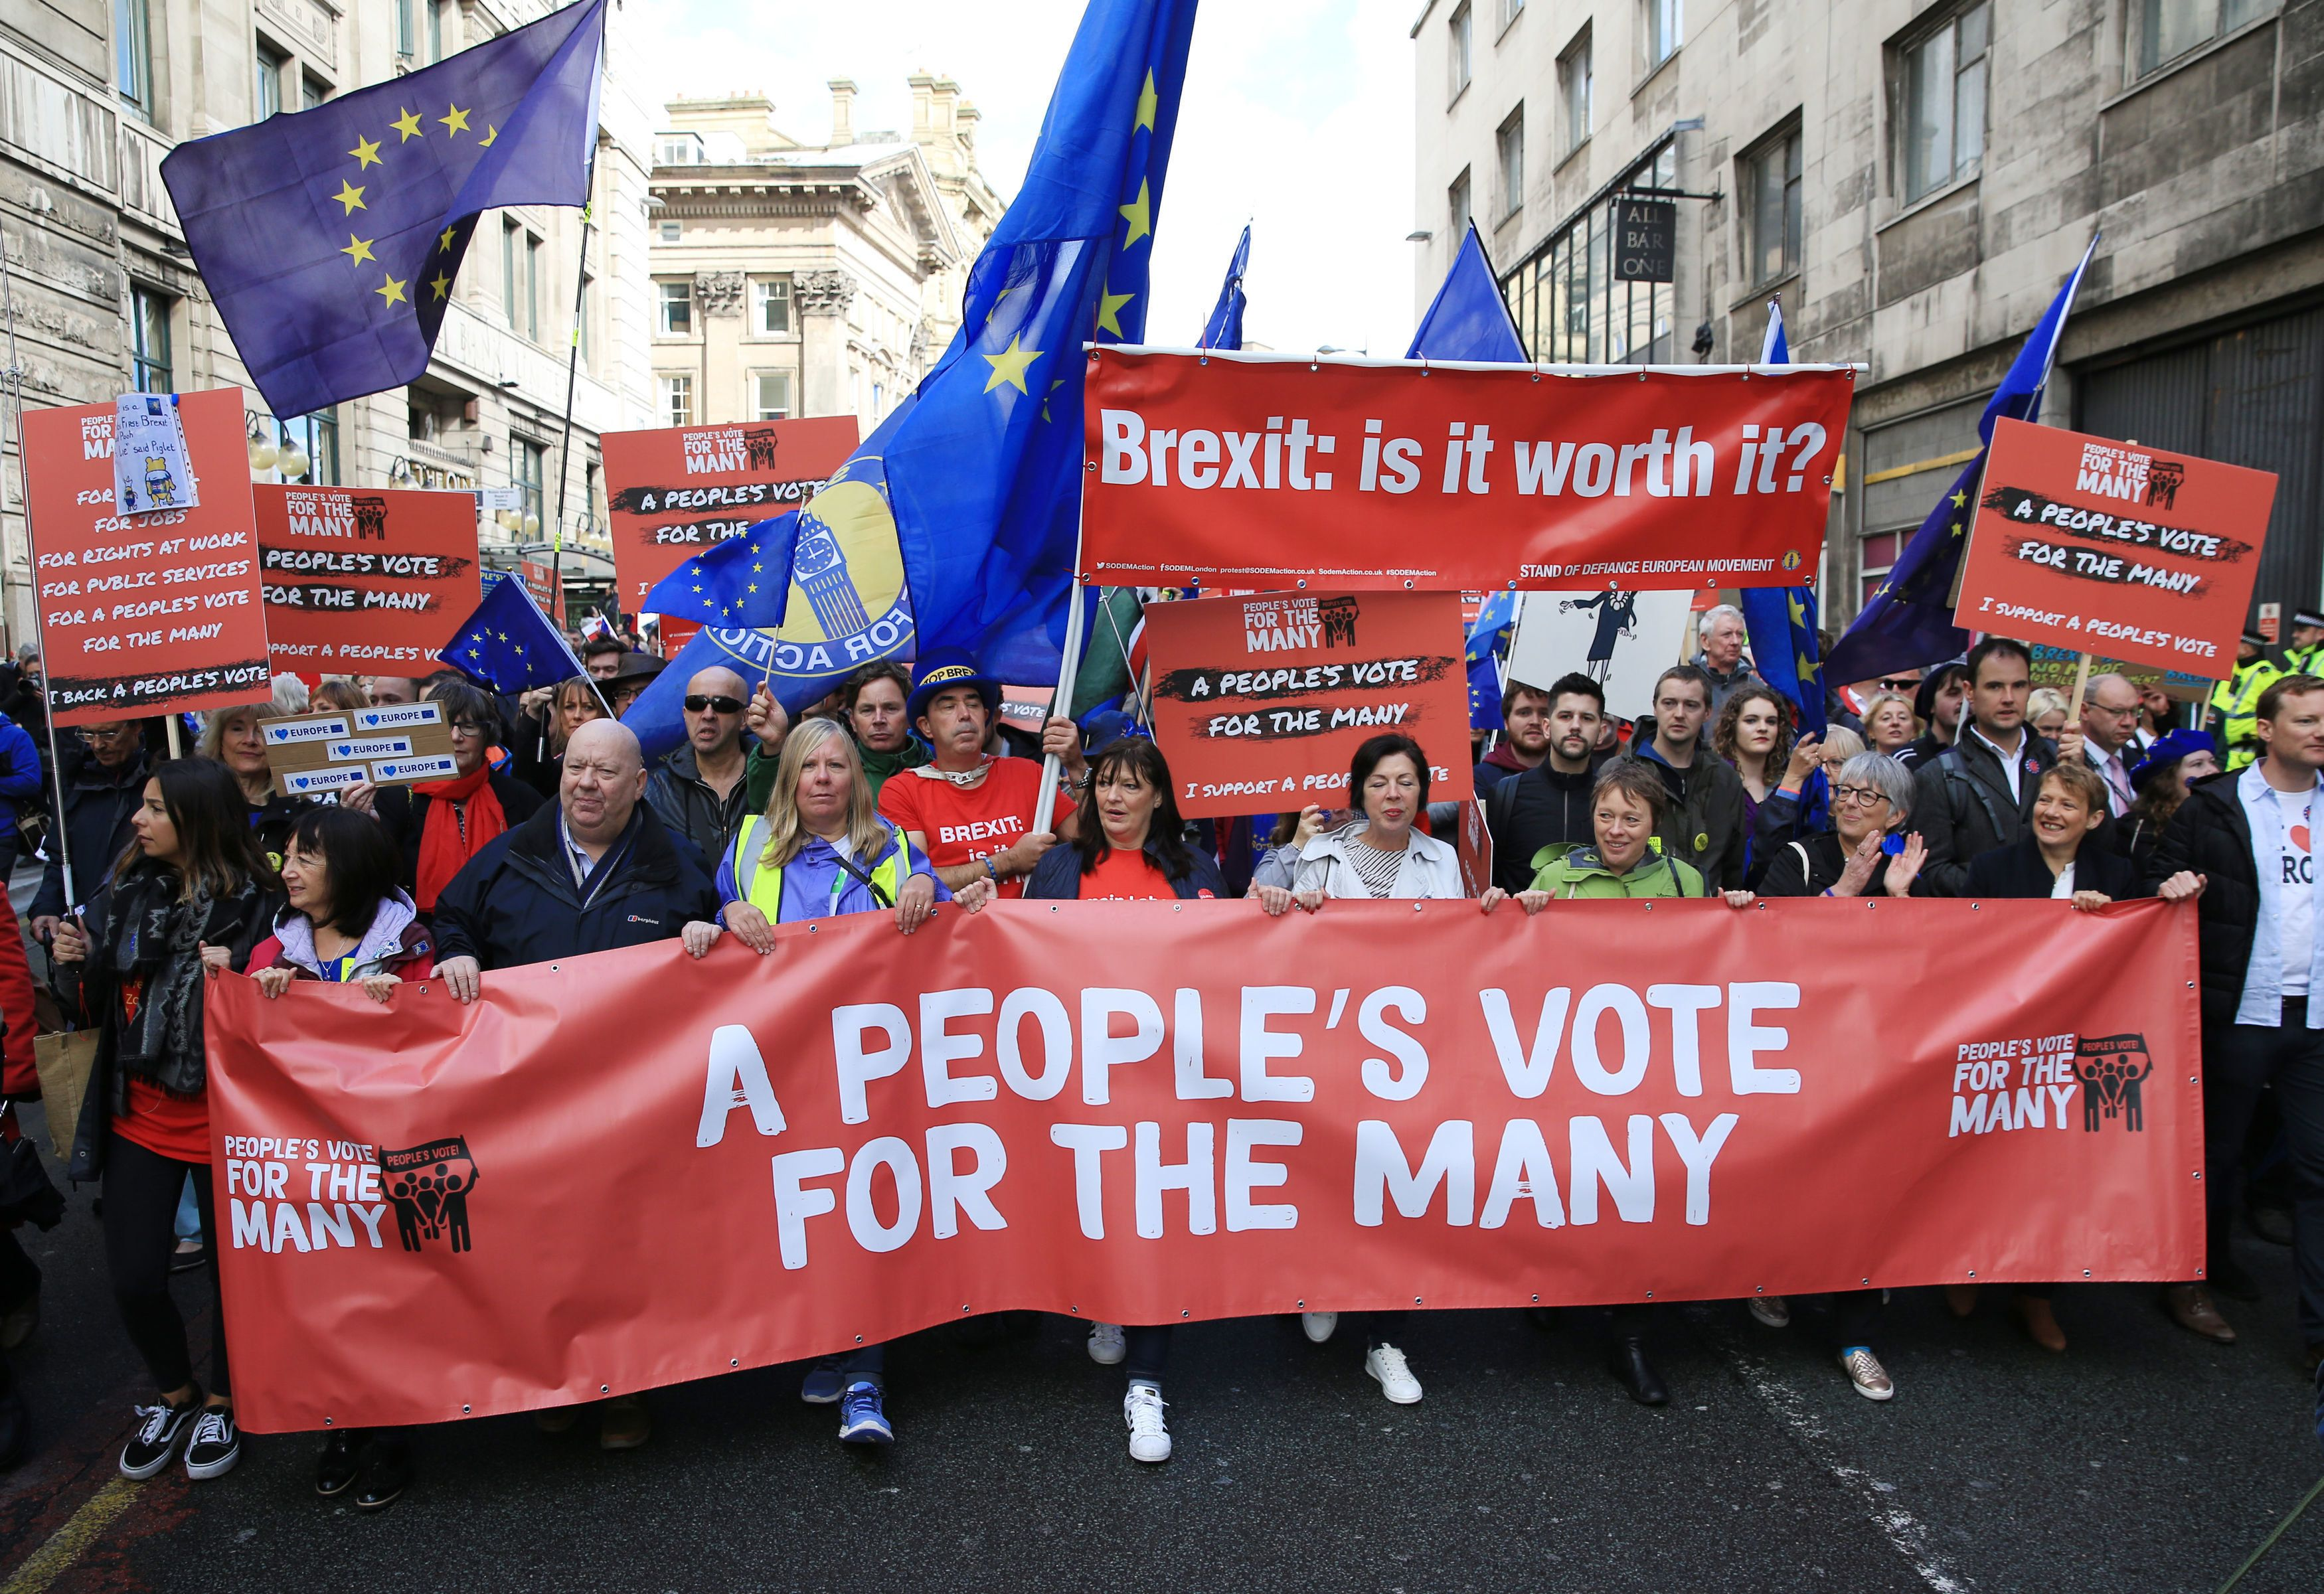 5,000 Protesters Demanding 'People's Vote' On Brexit Piles Pressure On